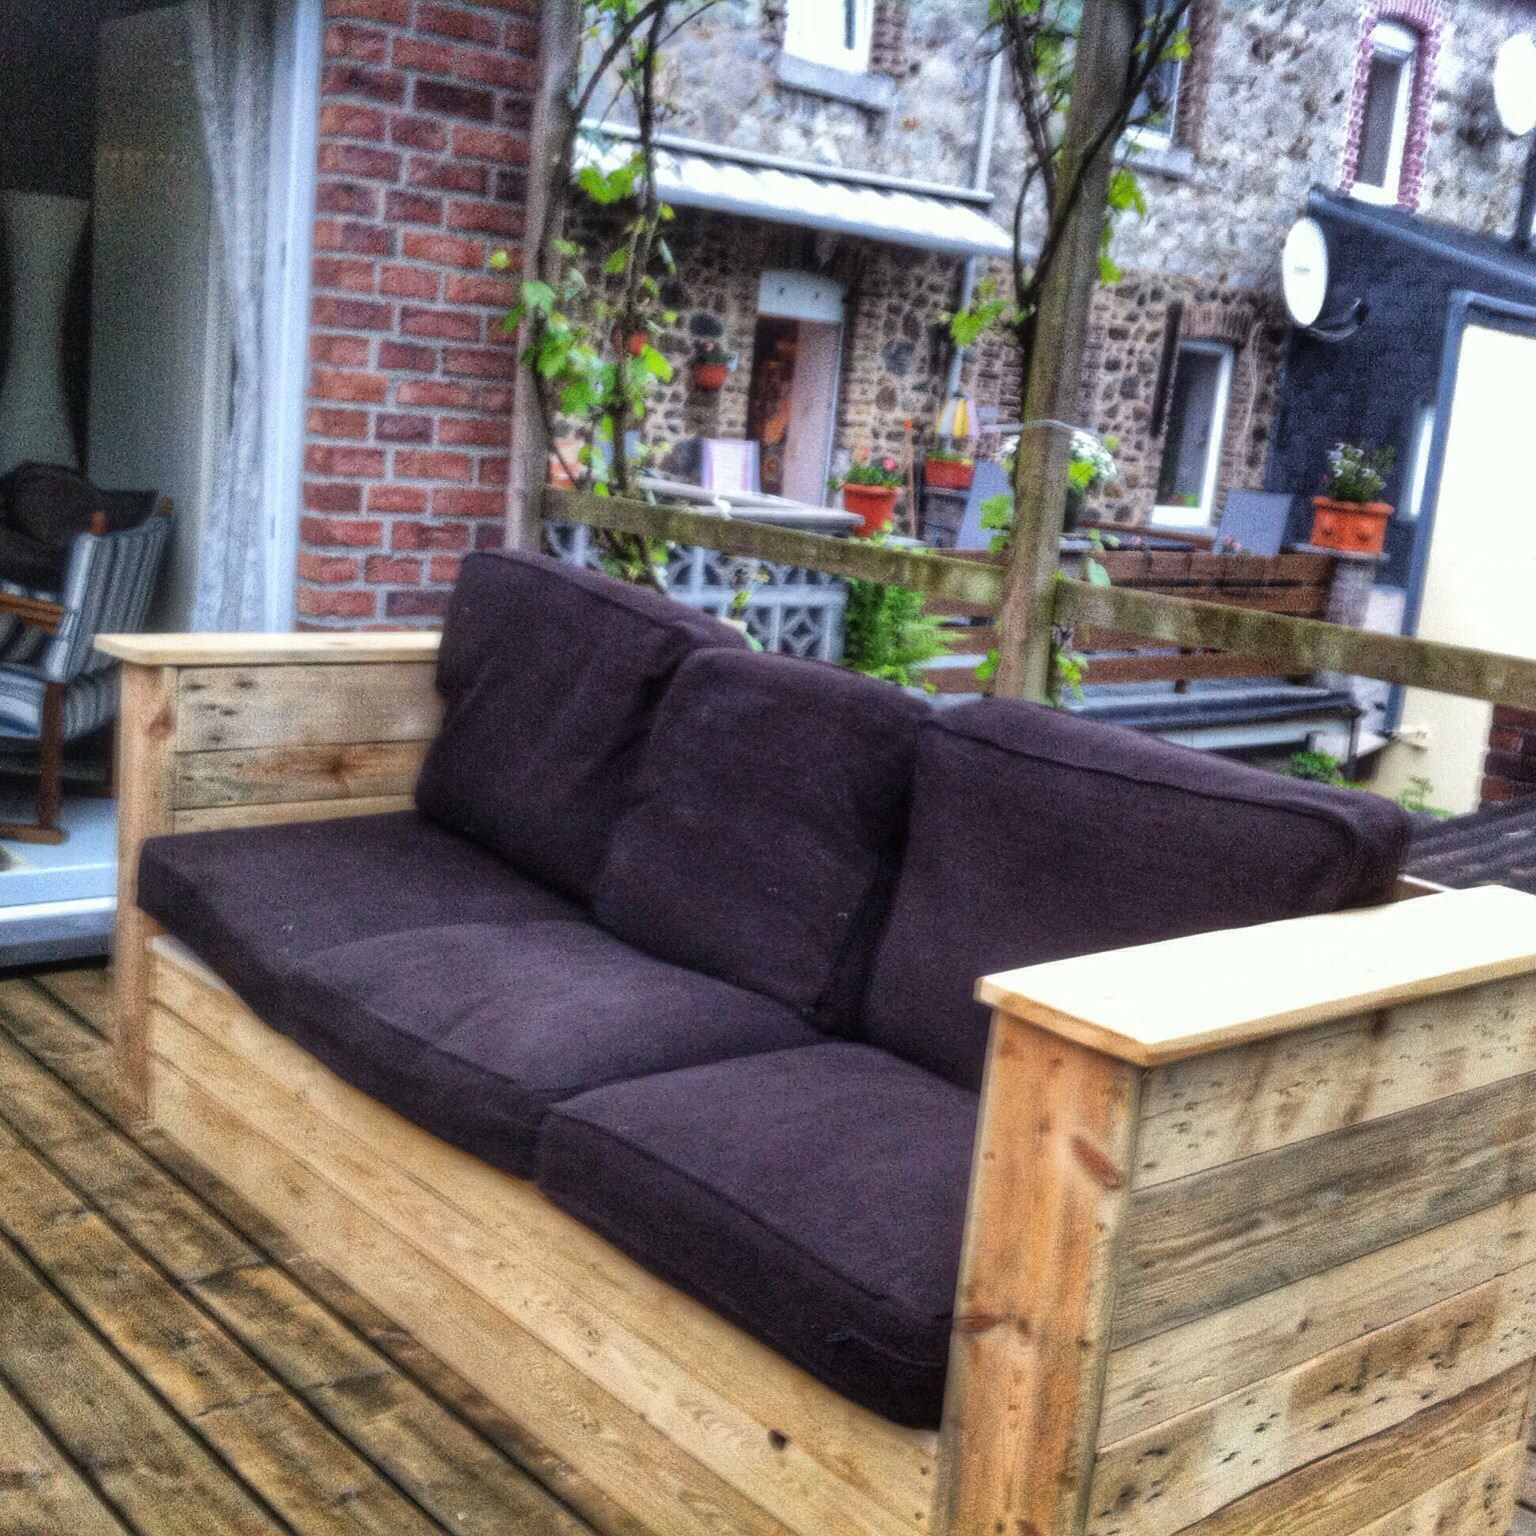 Garden Couch Pallet furniture, Diy pallet projects, Diy